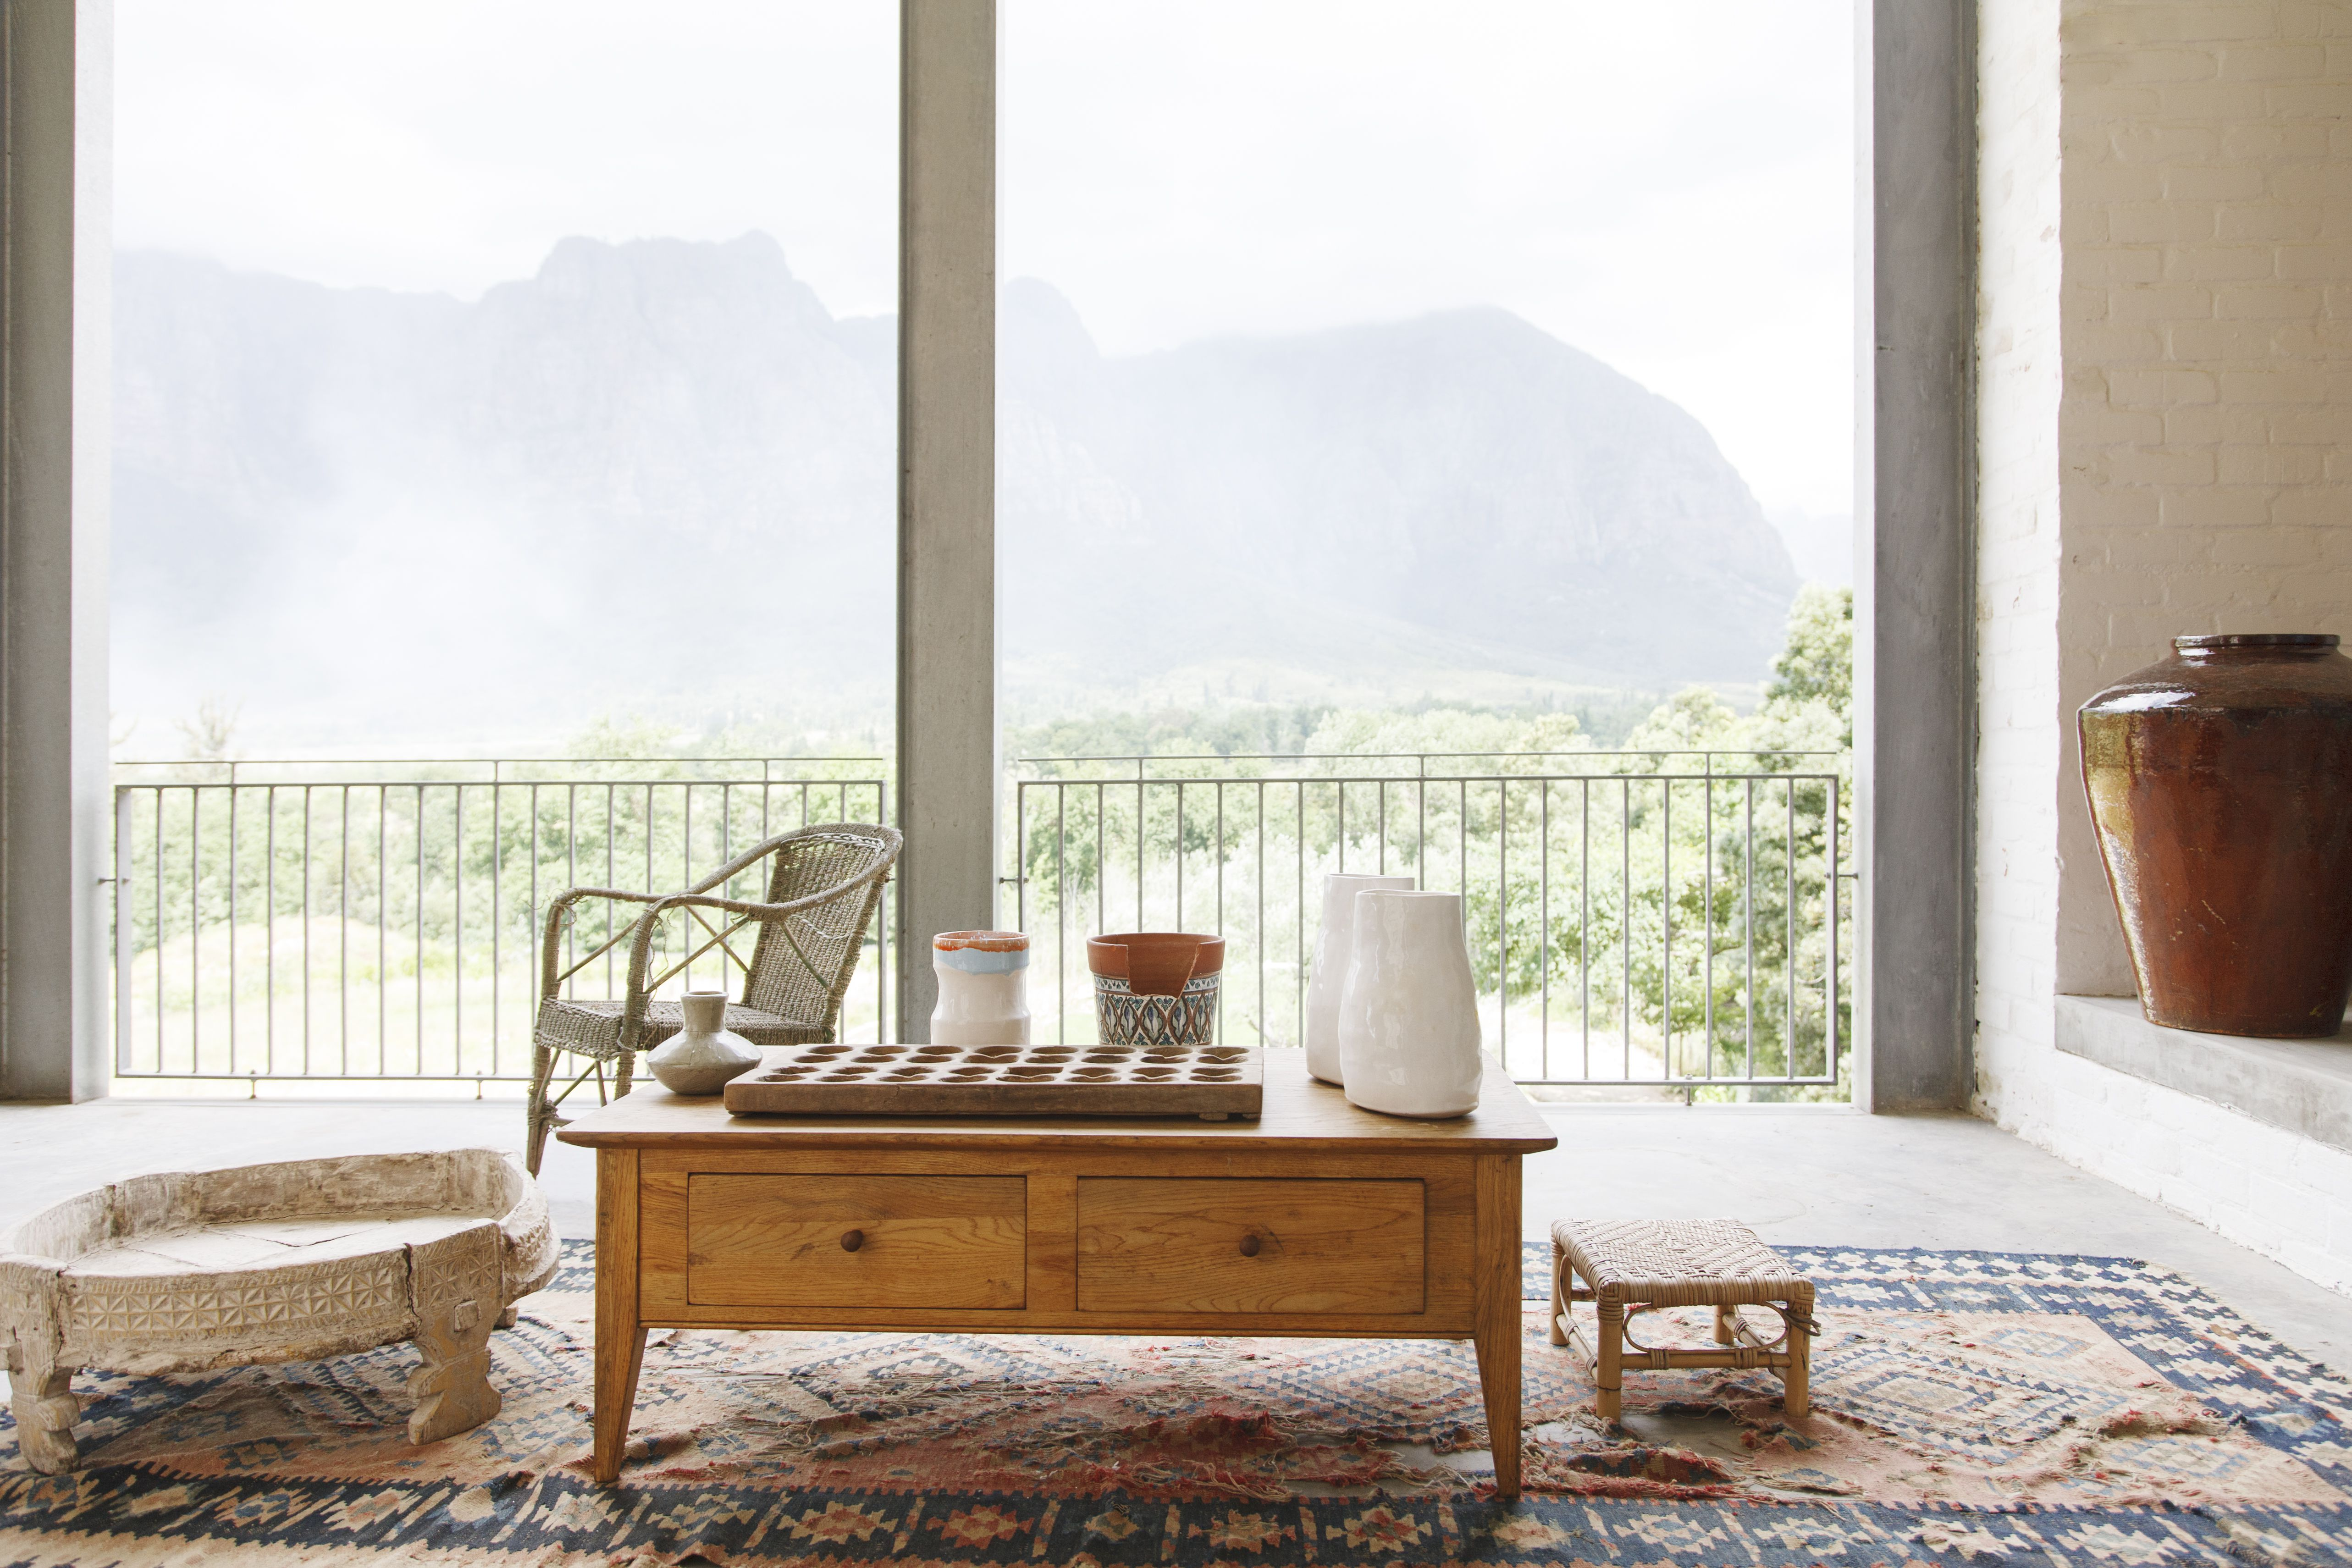 Coffee table in living room overlooking landscape